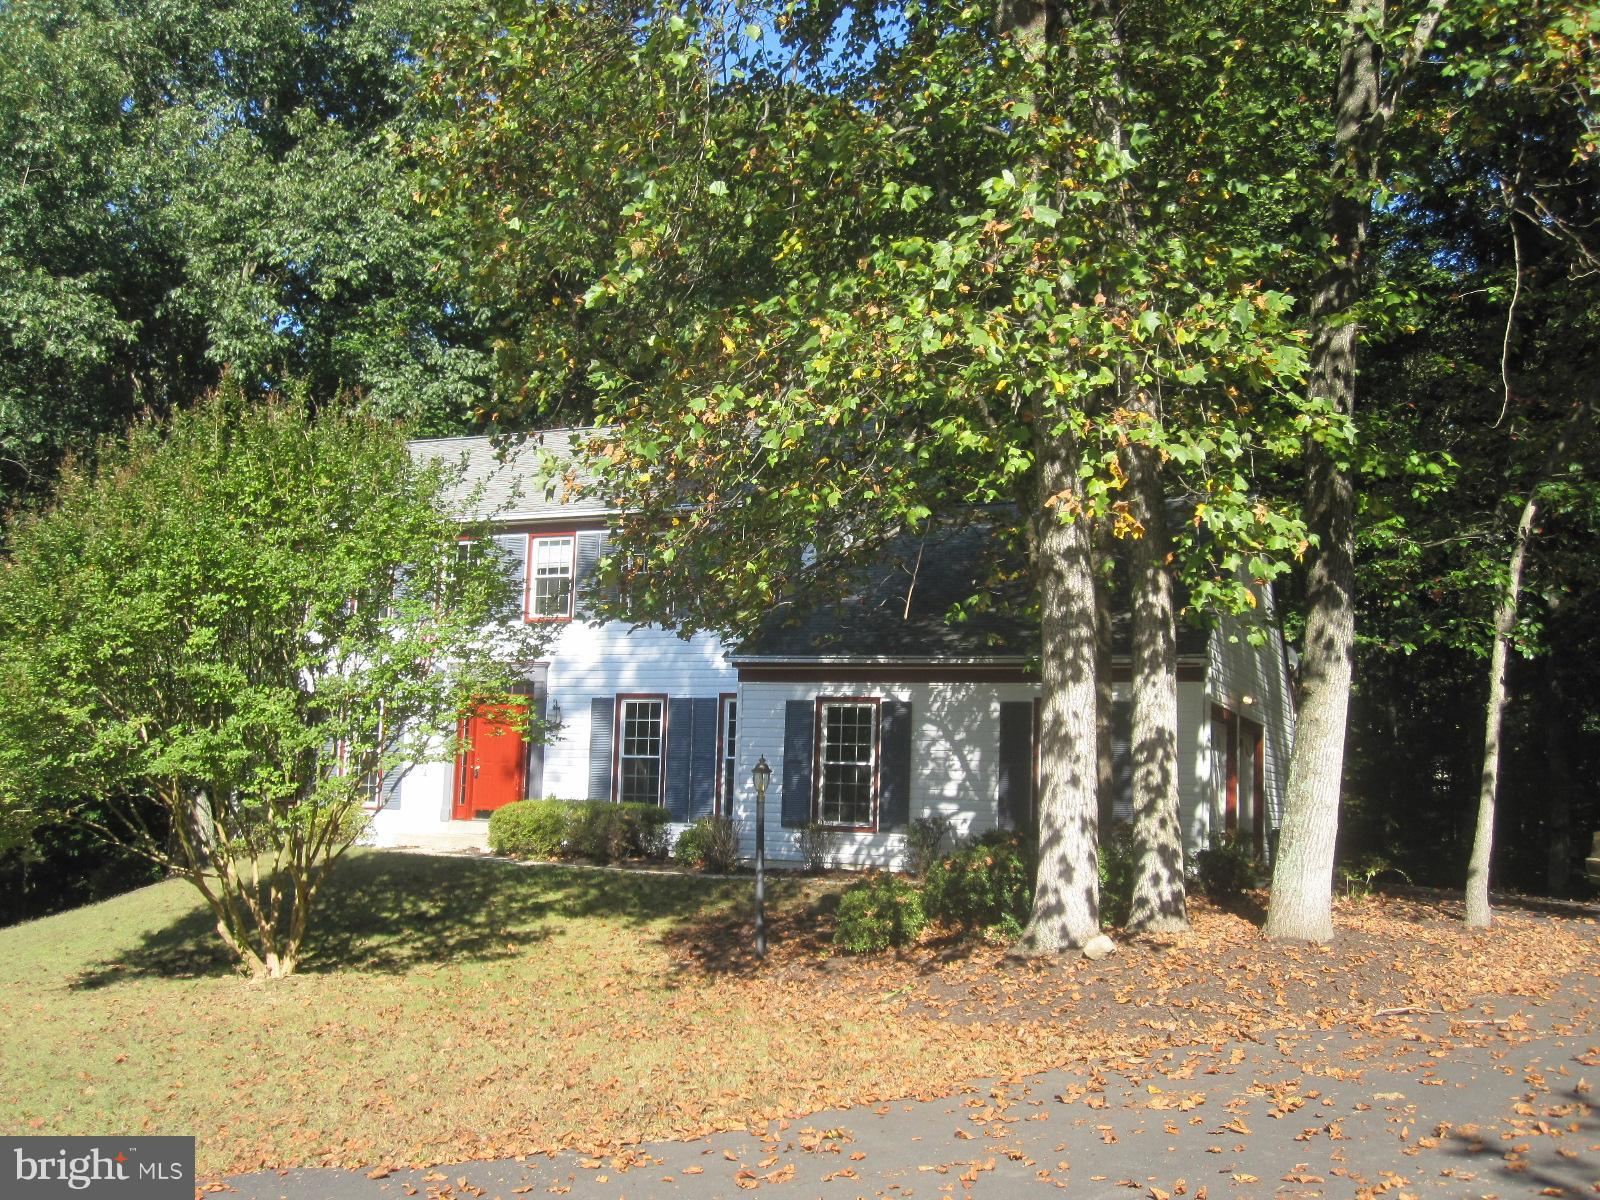 3-level Lynwood 5/3.5 colonial with 2-car sideload garage on 0.6 acre cul-de-sac lot directly across from pool park.  AS IS short sale with 3rd party approval required. Successful buyer required to pay separate additional 5% buyers premium+$400 HOA estoppel to third party. Offer Instructions: All cash offers should be submitted with proof of funds for closing. All non-cash offers should be submitted with a pre-qualification letter. Multiple offers have been received. Deadline for highest and best is Thursday 2/21/19 at 10:00 EST.